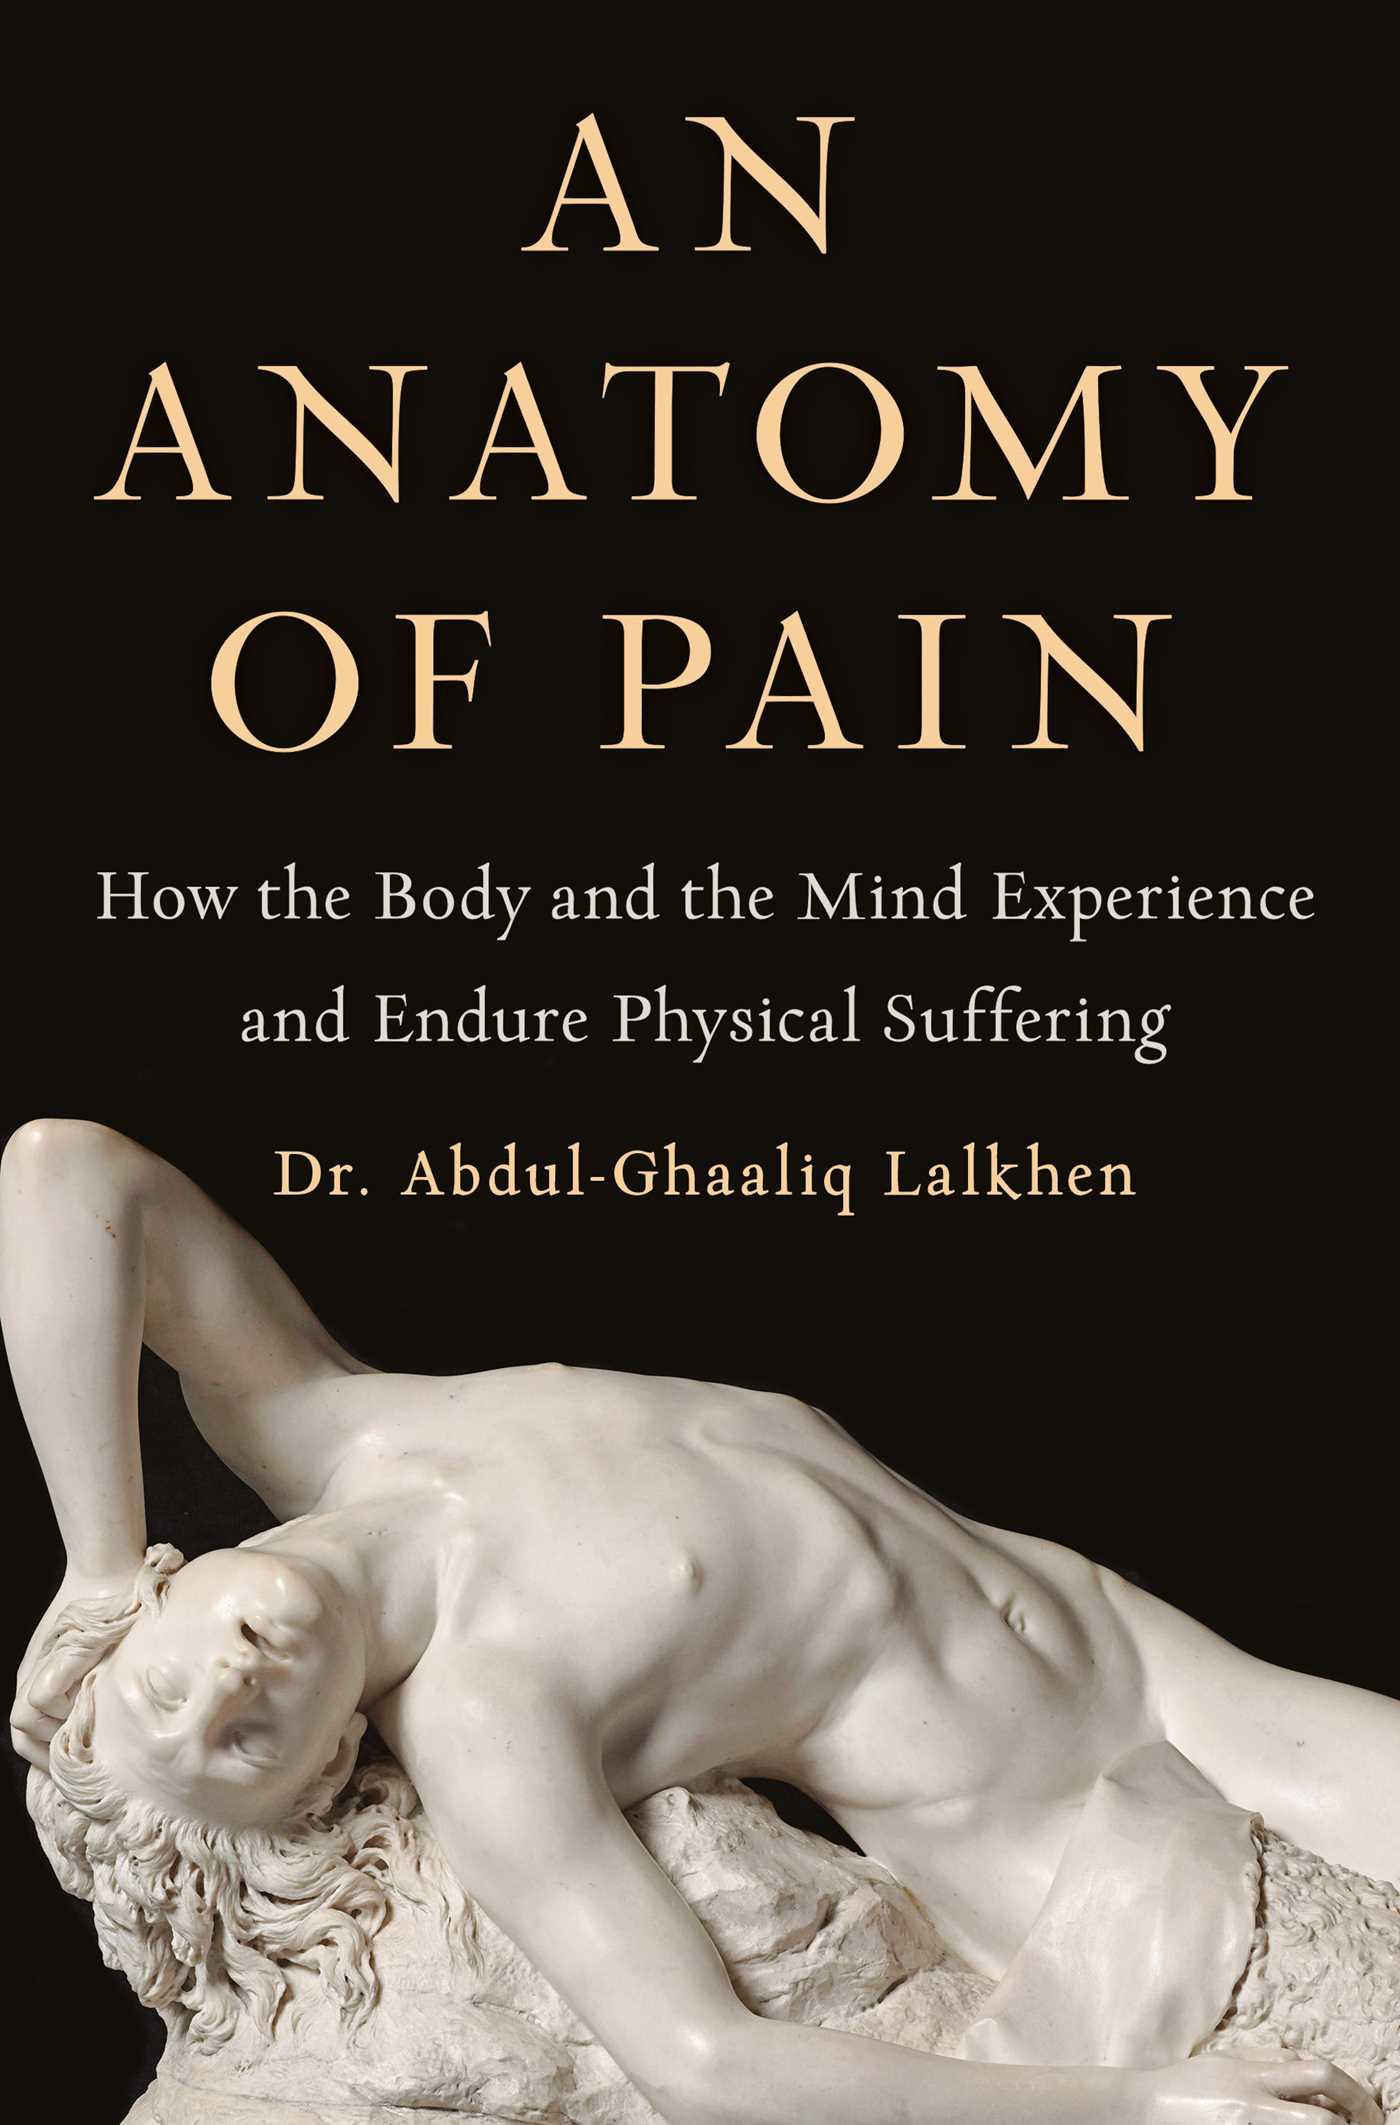 An Anatomy of Pain: How the Body and the Mind Experience and Endure Physical Suffering